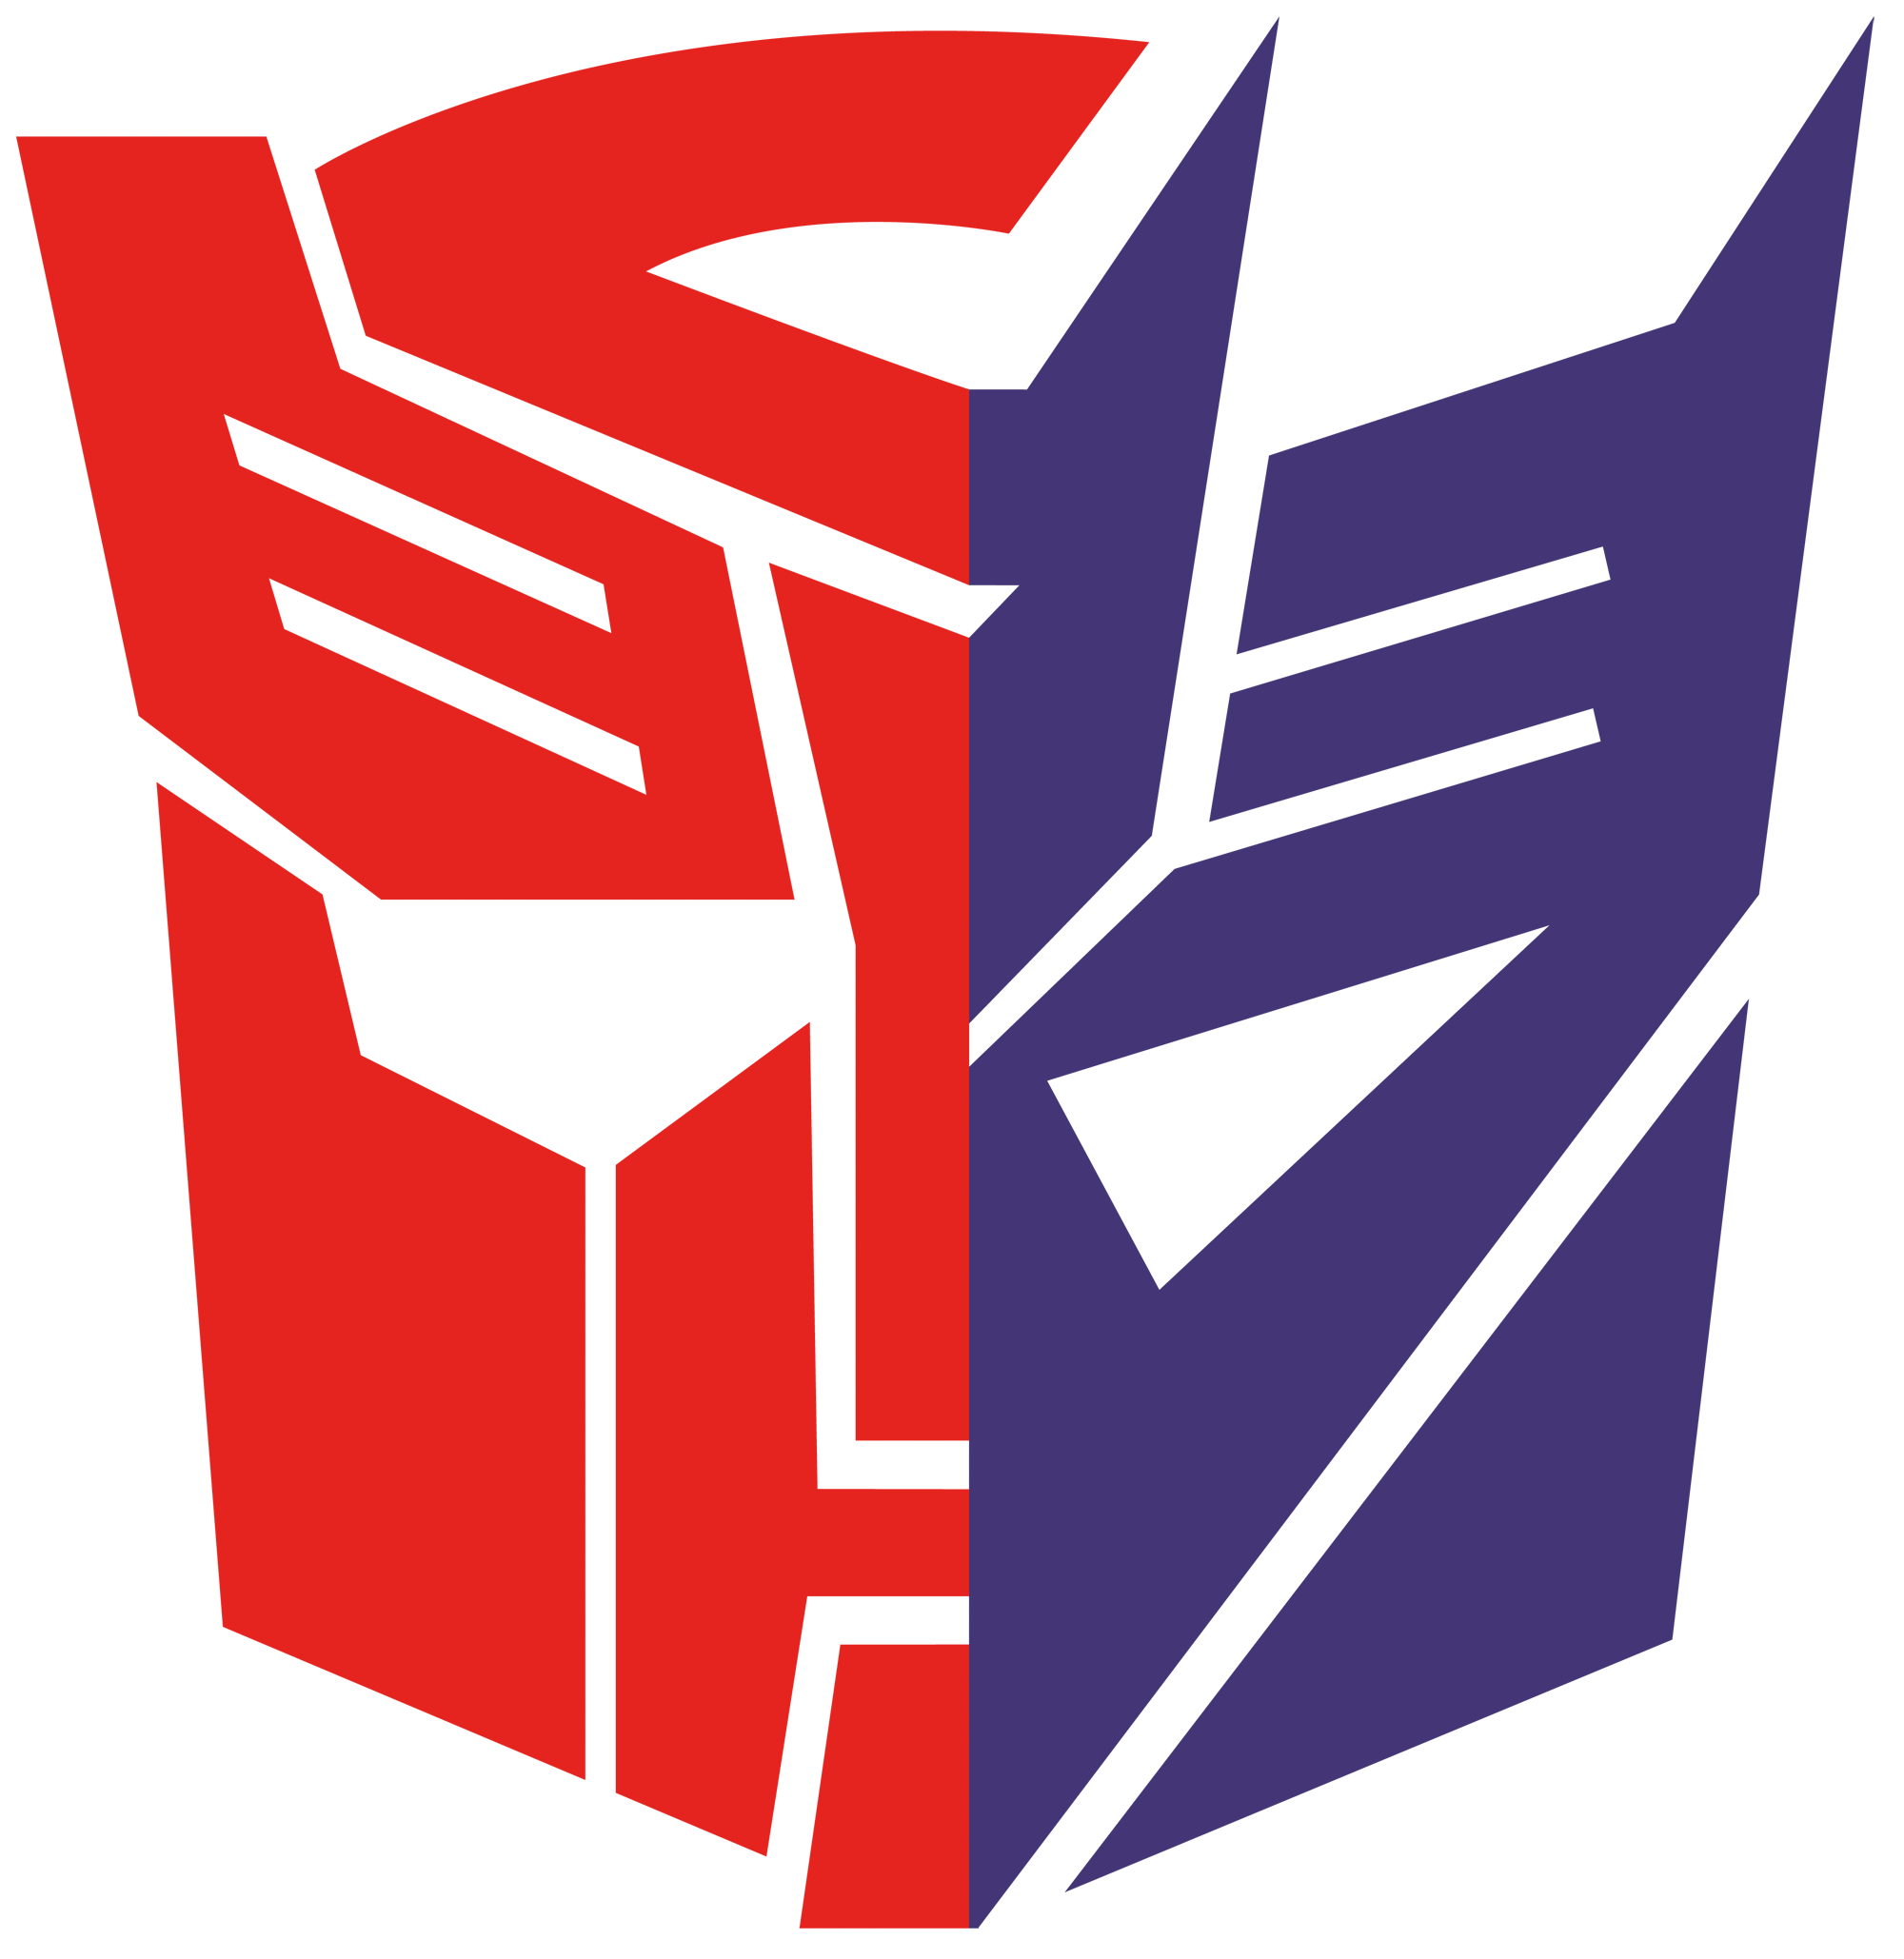 autobot and decepticon symbol images meaning of text symbols